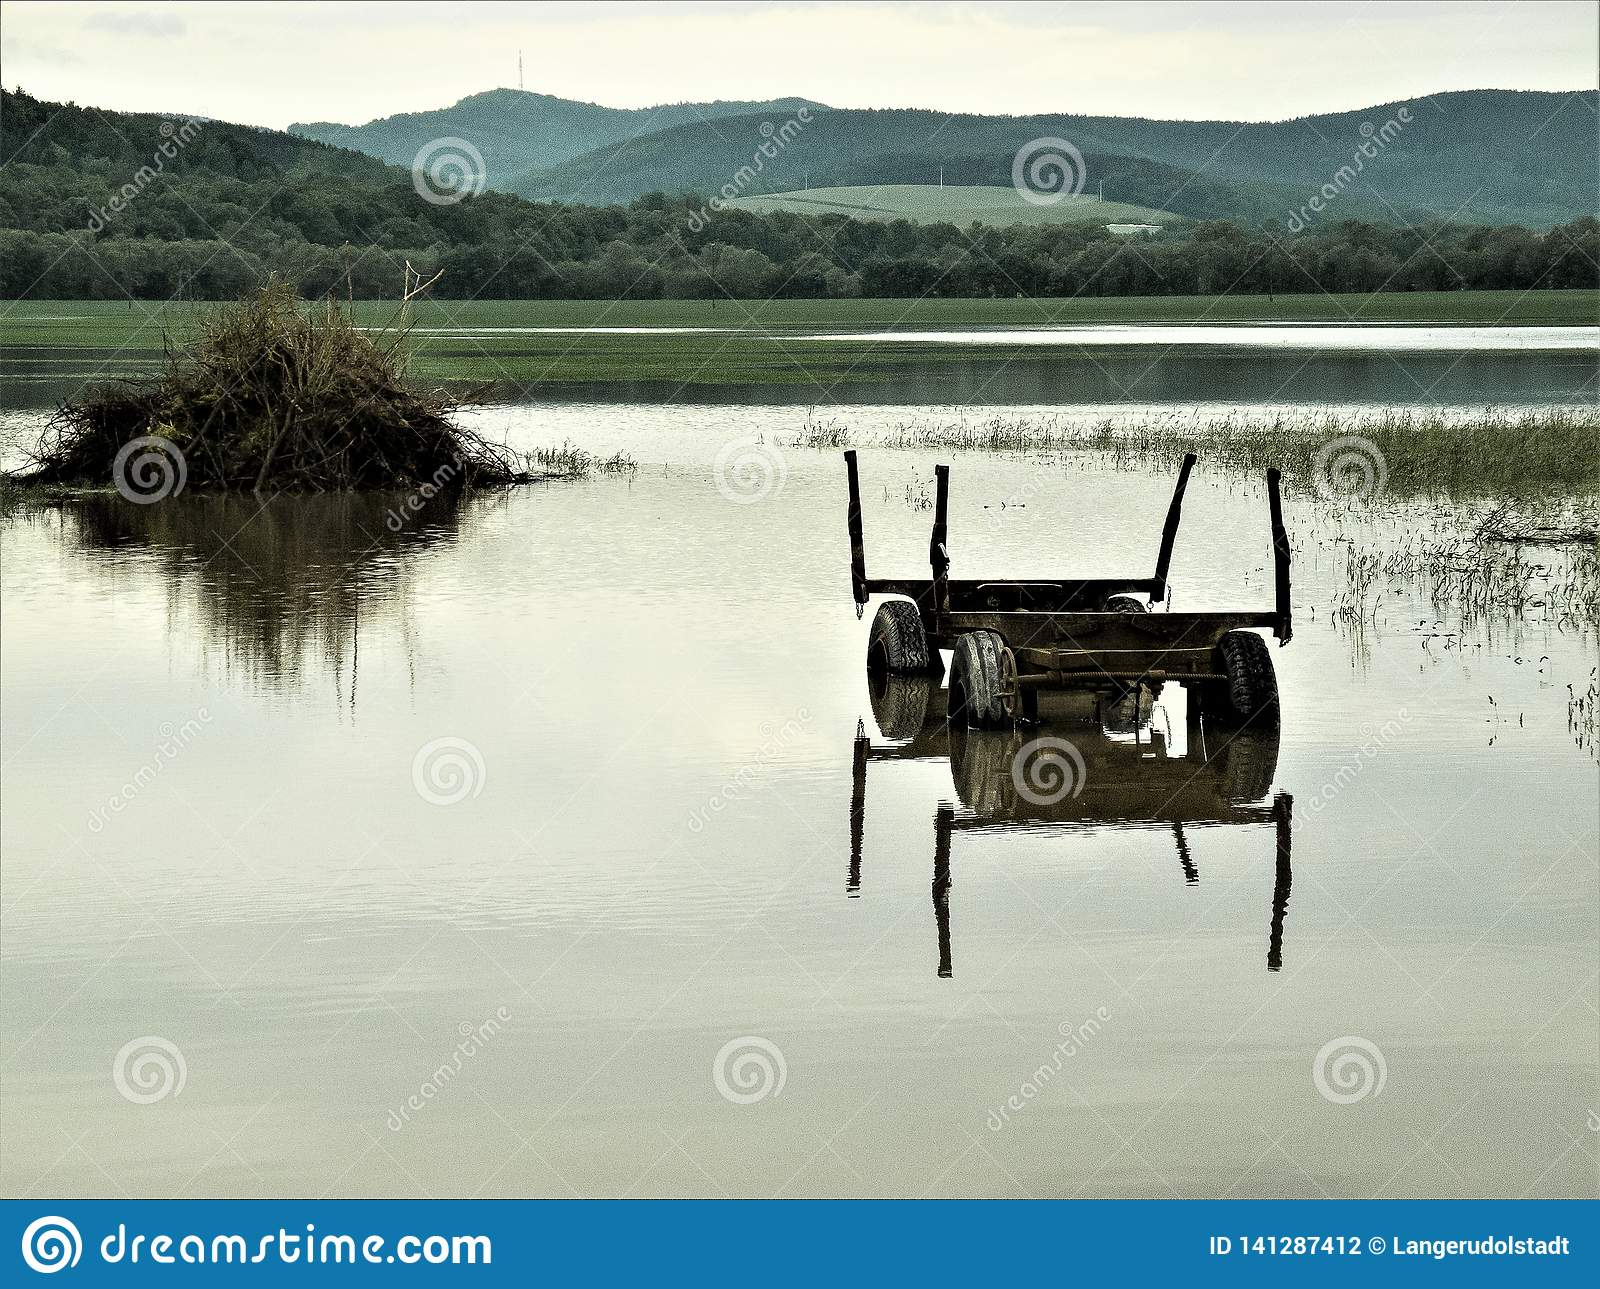 Mirroring - agricultural car in a flood area,near to Rudolstadt, Thuringia, Germany